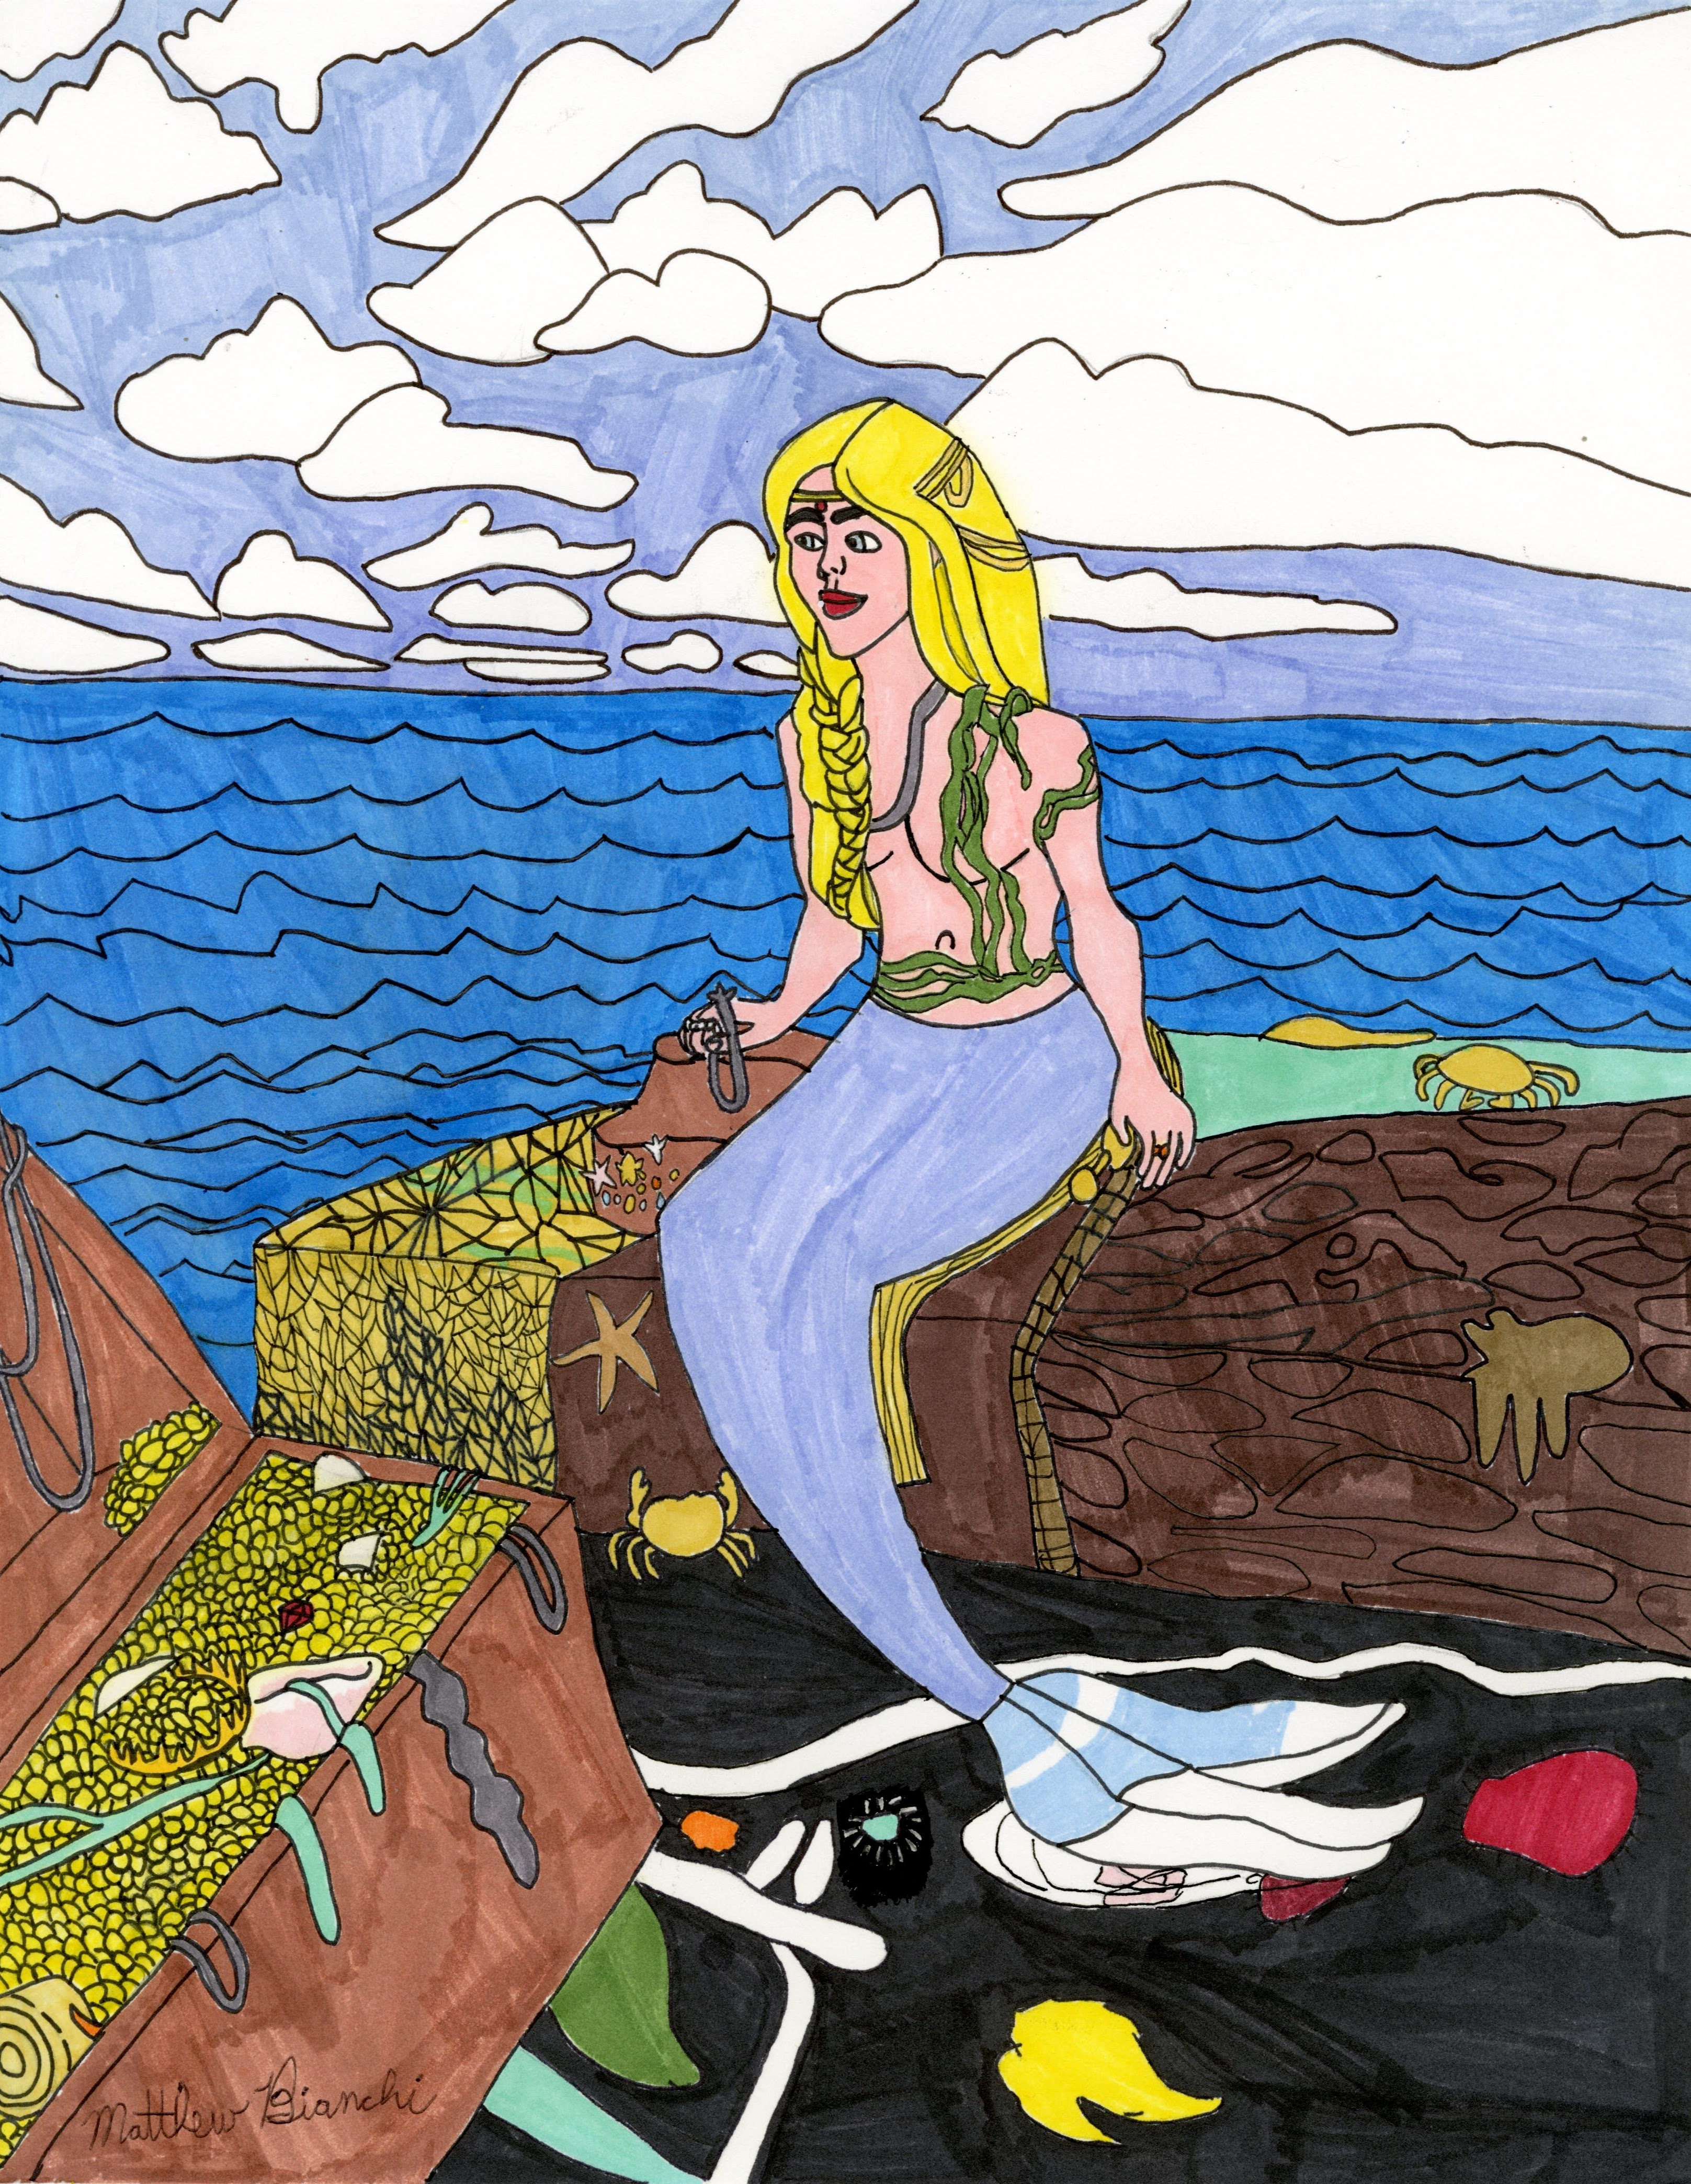 """Mermaid and Her Treasure"" by Matthew Bianchi"